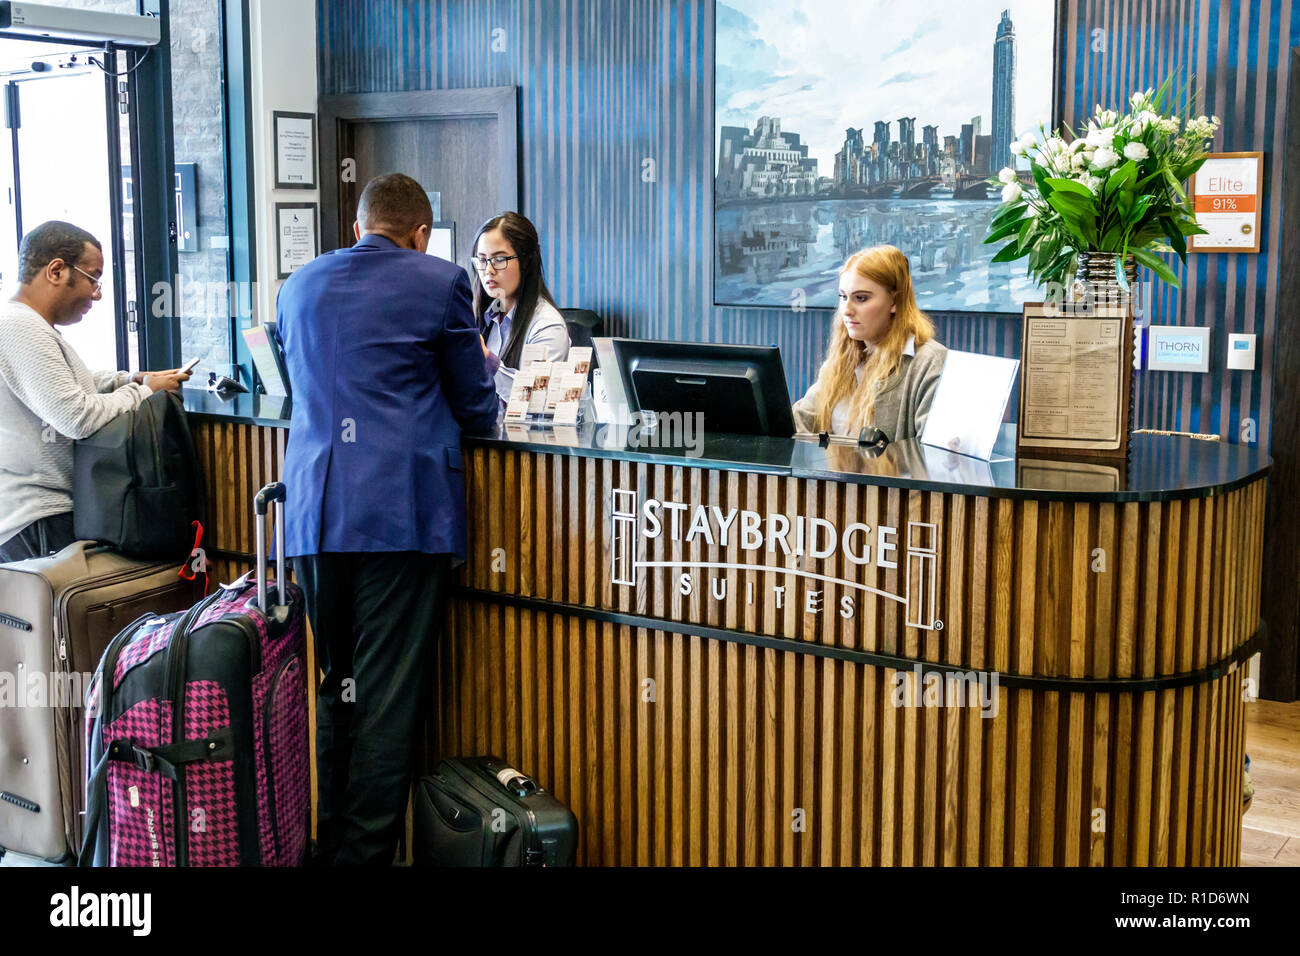 London England United Kingdom Great Britain Lambeth Staybridge Suites London Vauxhall hotel inside interior front desk clerk employee check-in clerk g - Stock Image